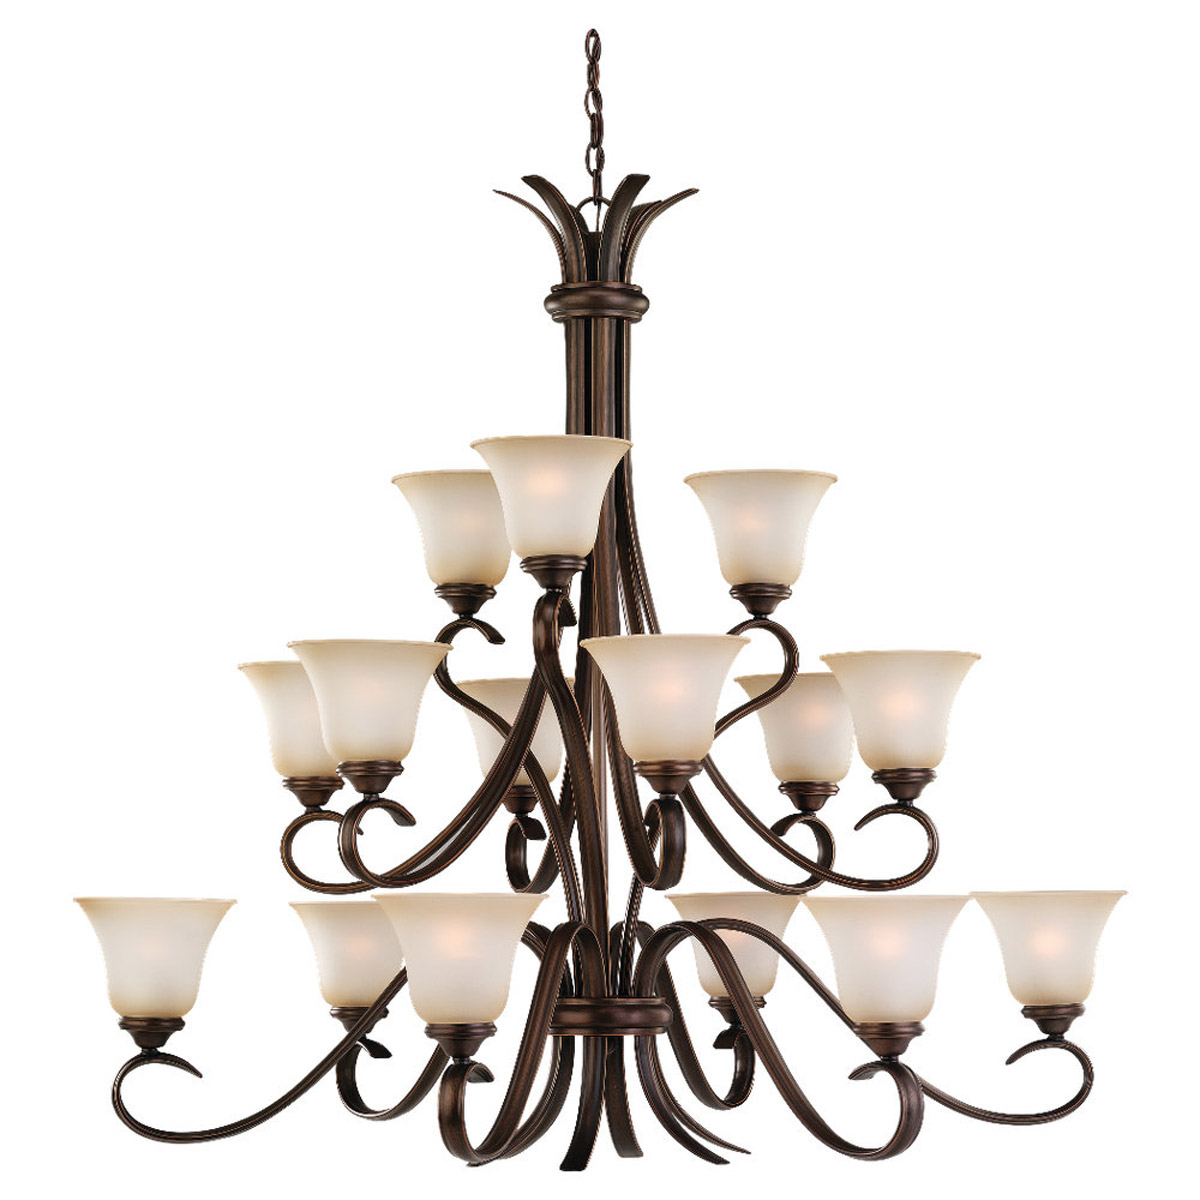 Sea Gull Lighting Rialto 15 Light Chandelier in Russet Bronze 31363-829